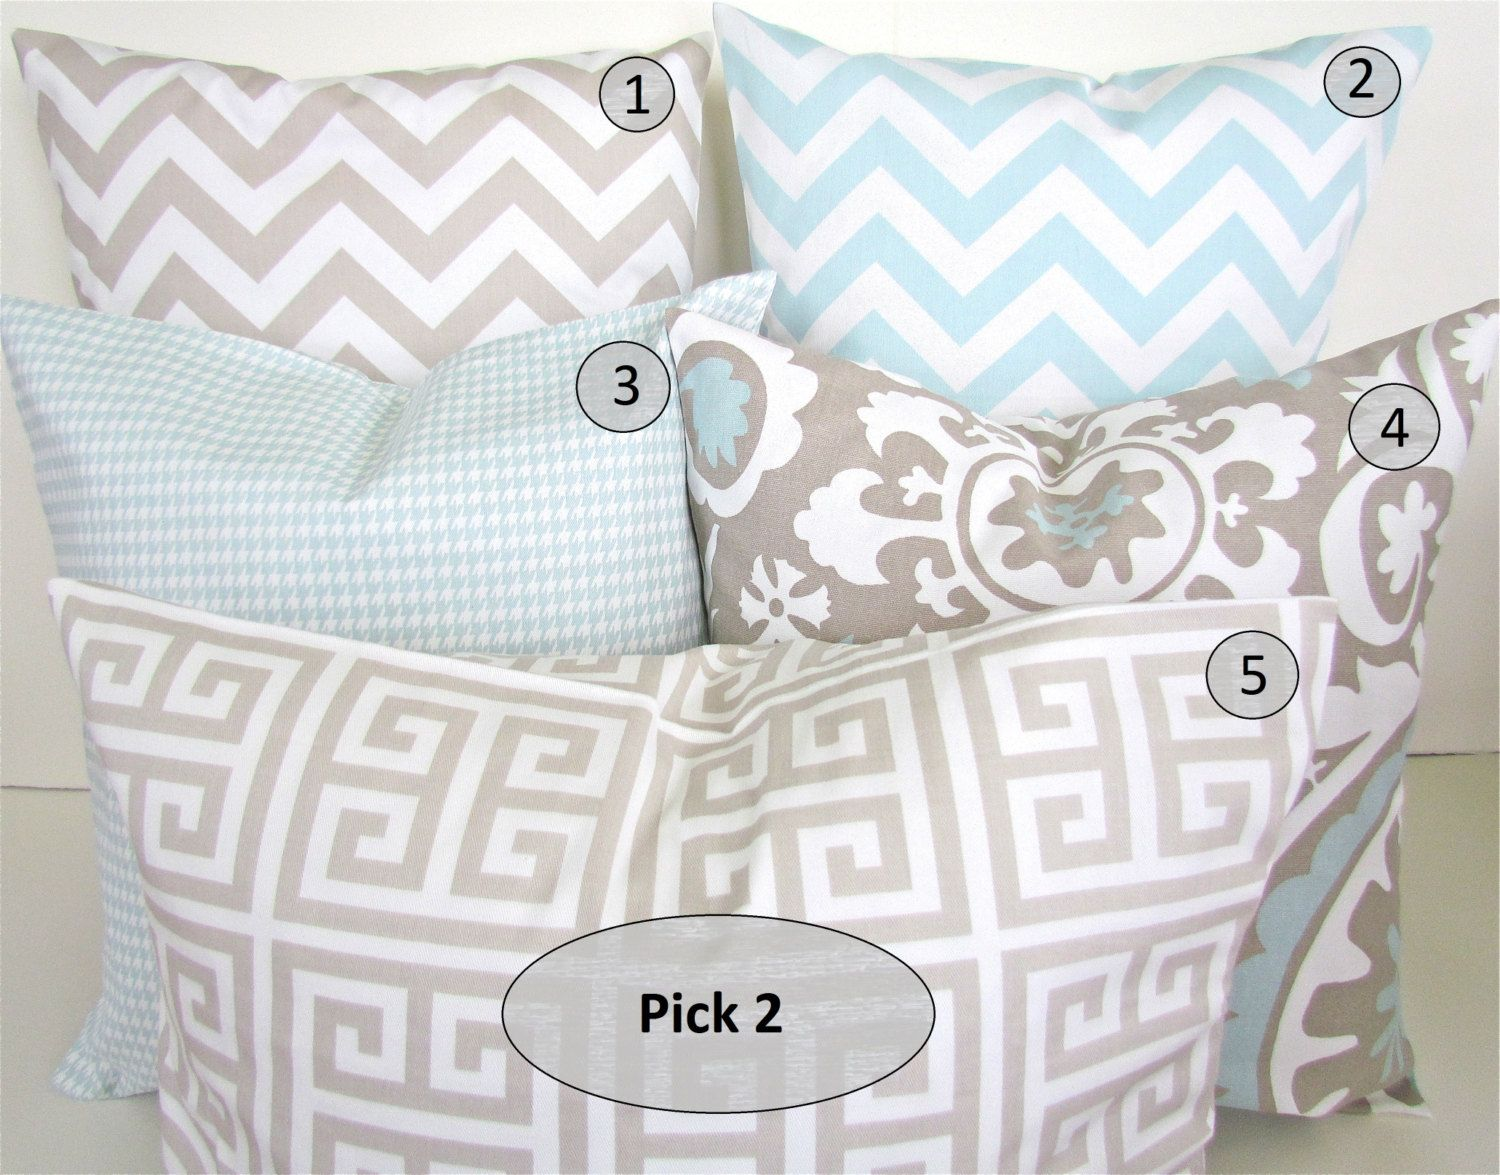 decorative pillows set pick 2 tan 16x16 blue decorative throw pillows 16 x 16 baby